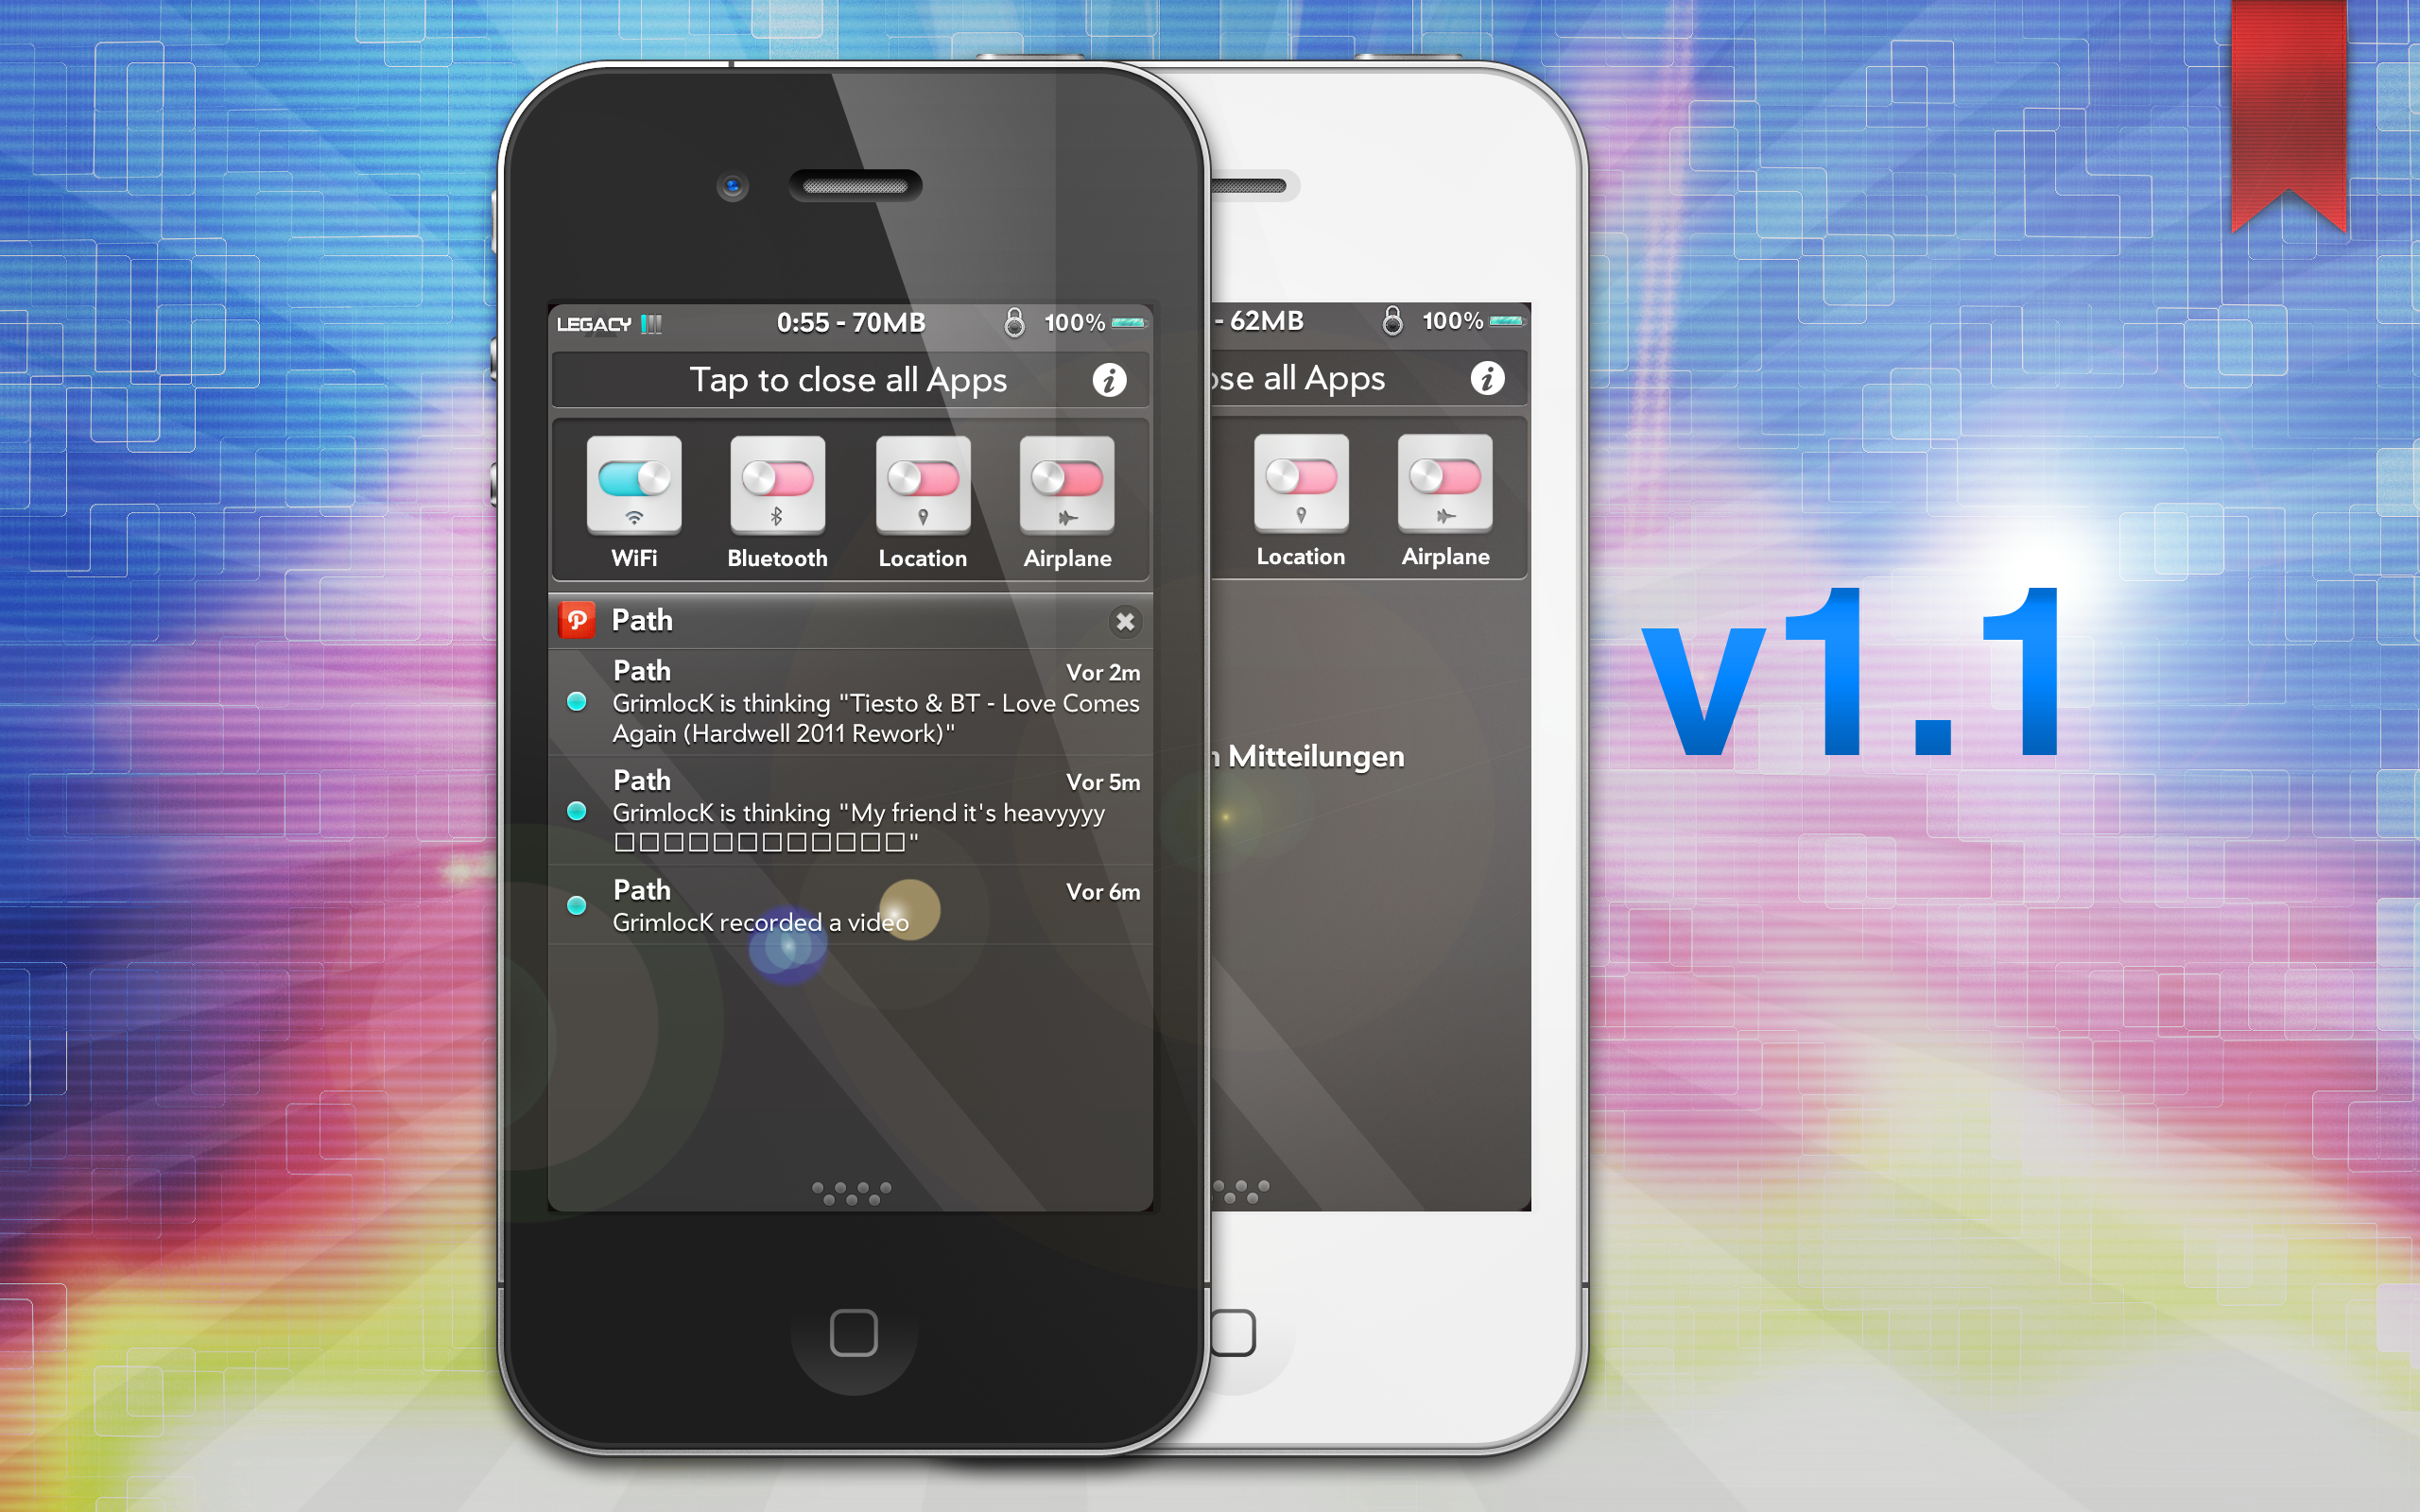 inception - iOS Notification Center v1.1 by KillingTheEngine